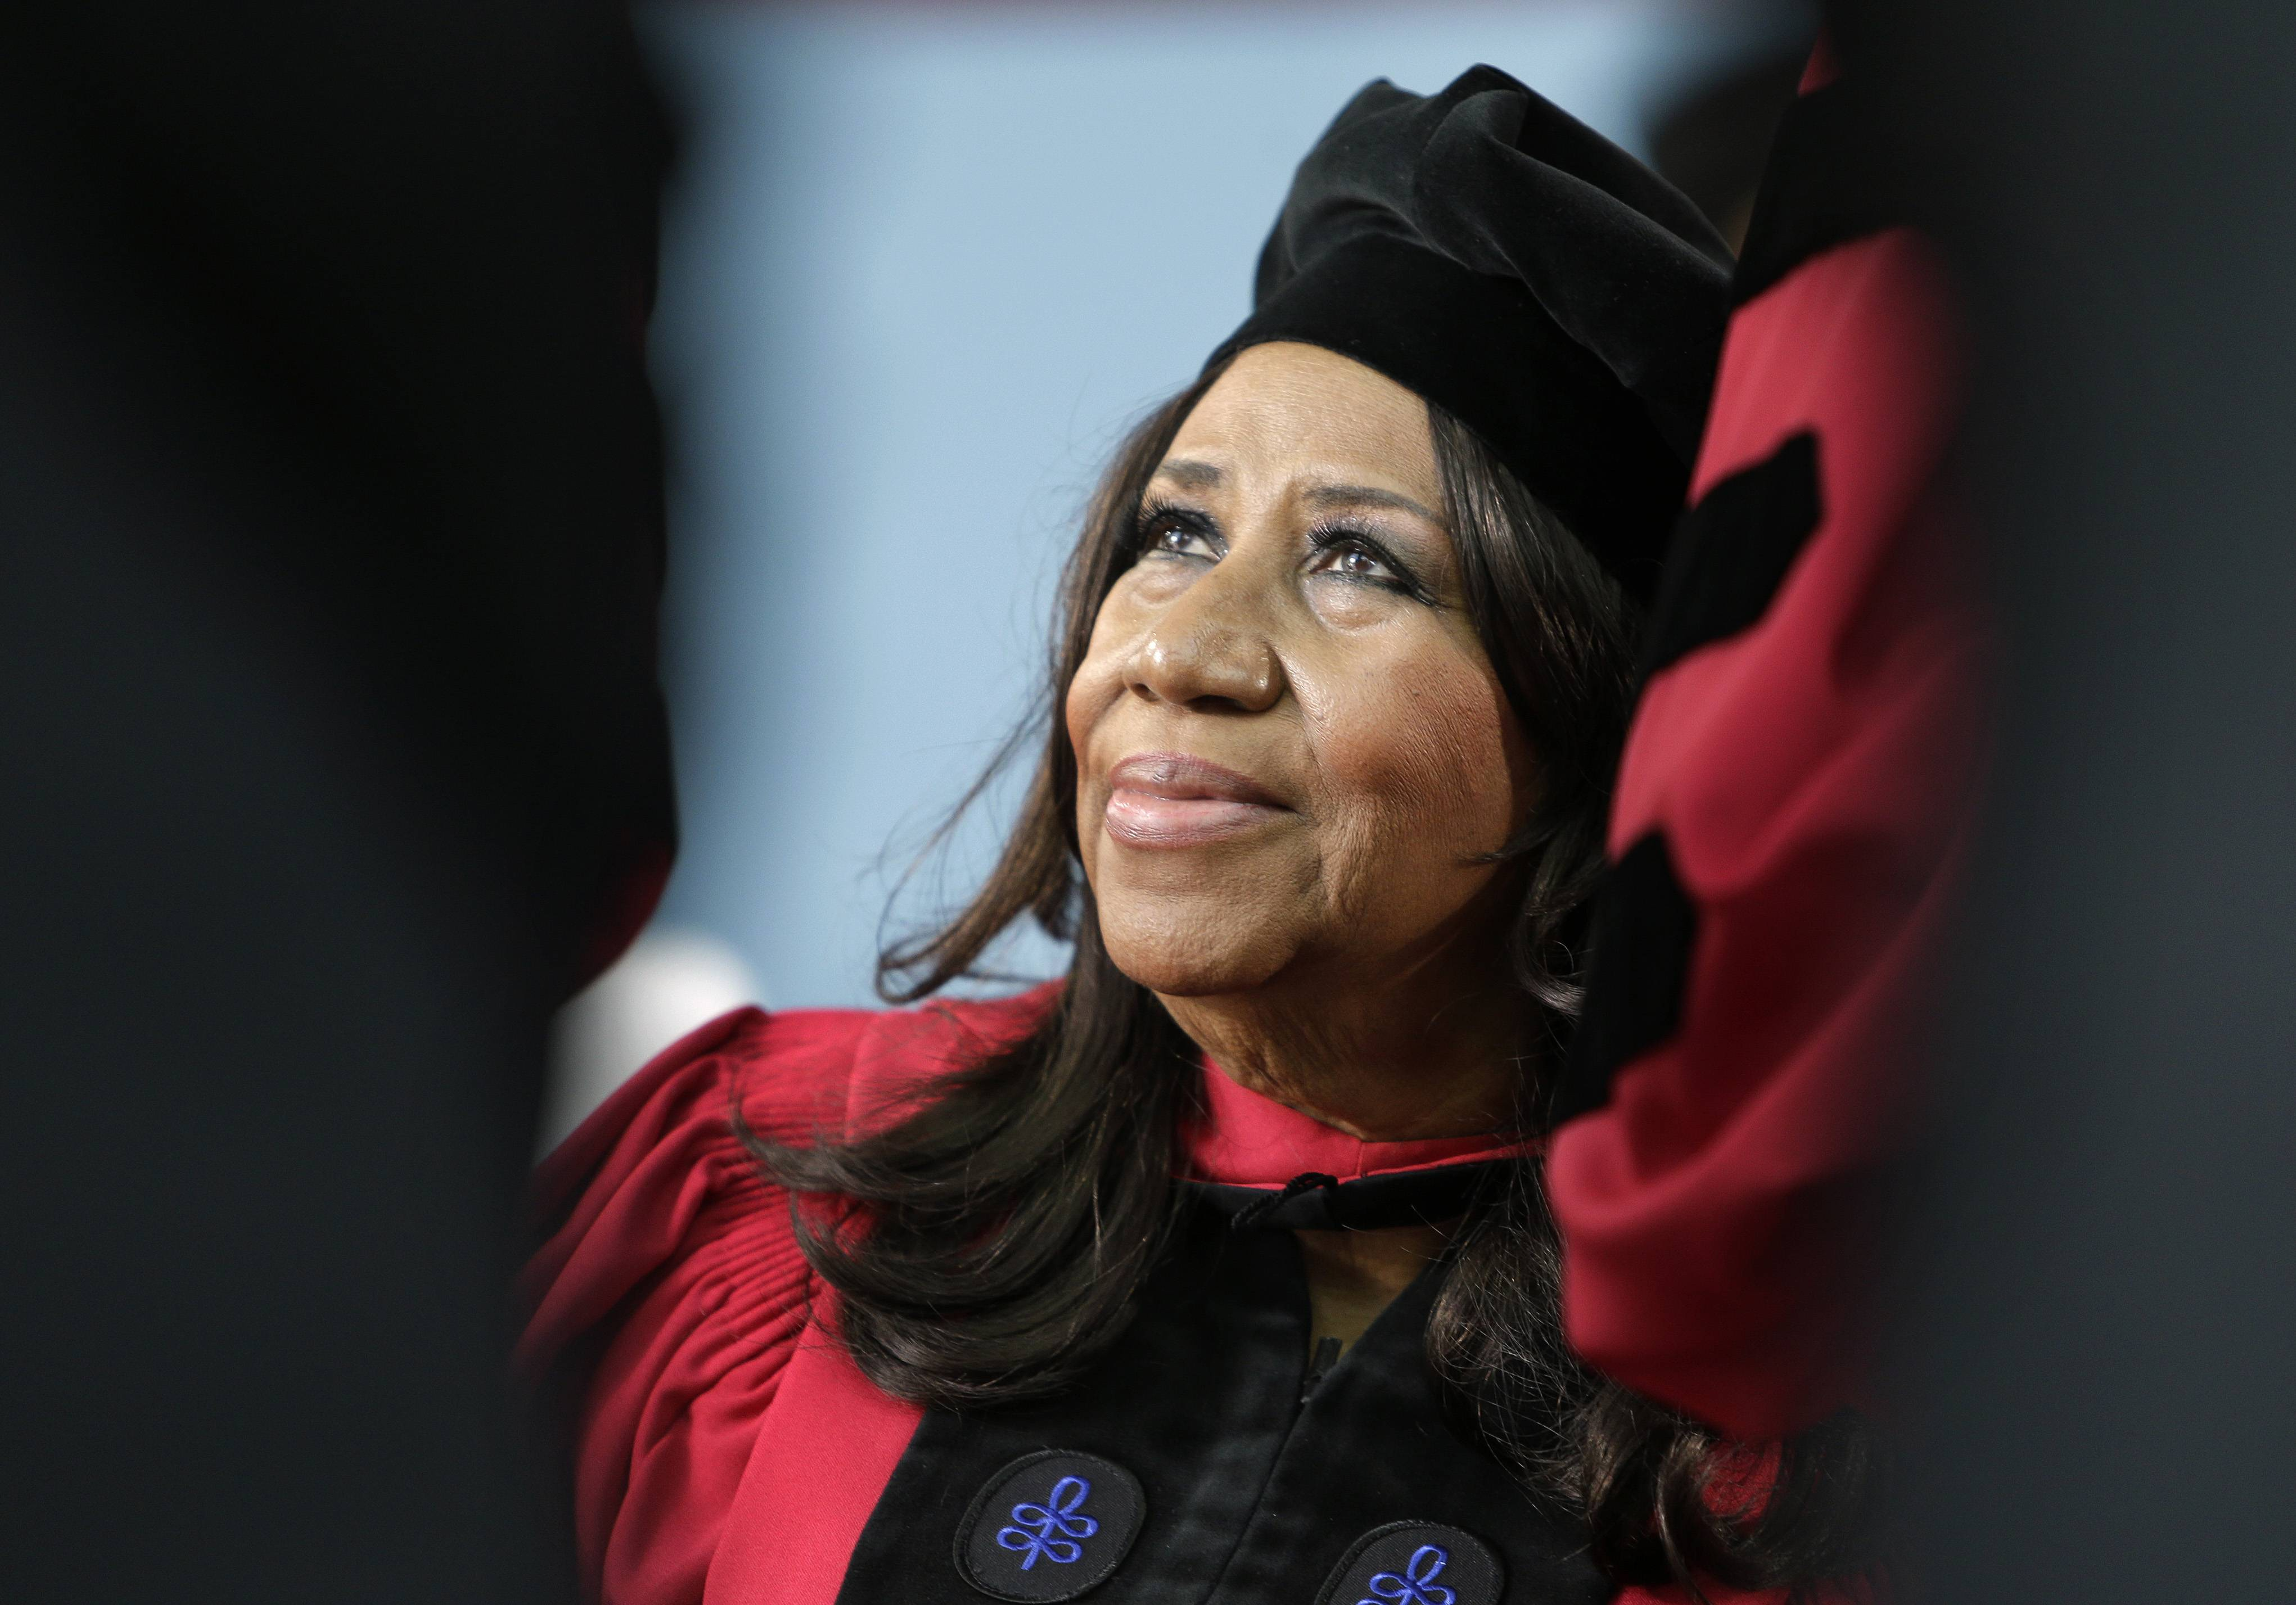 "In this May 29 file photo, singer Aretha Franklin looks up while seated onstage during Harvard University commencement ceremonies, in Cambridge, Mass., where she was presented with an honorary Doctor of Arts degree. Franklin has some harsh words for a New York server at a Johnny Rockets restaurant in Lewiston near Buffalo who told the Queen of Soul she wasn't allowed to eat her takeout inside the restaurant. A spokesman for Franklin says on Tuesday, July 22, Franklin ordered a hamburger after performing a sold-out show. But he says the server screamed at Franklin, saying she couldn't sit down to eat because she had ordered takeout. A Johnny Rockets spokeswoman says the franchise owner is sorry for the actions of ""a new and very young employee."""